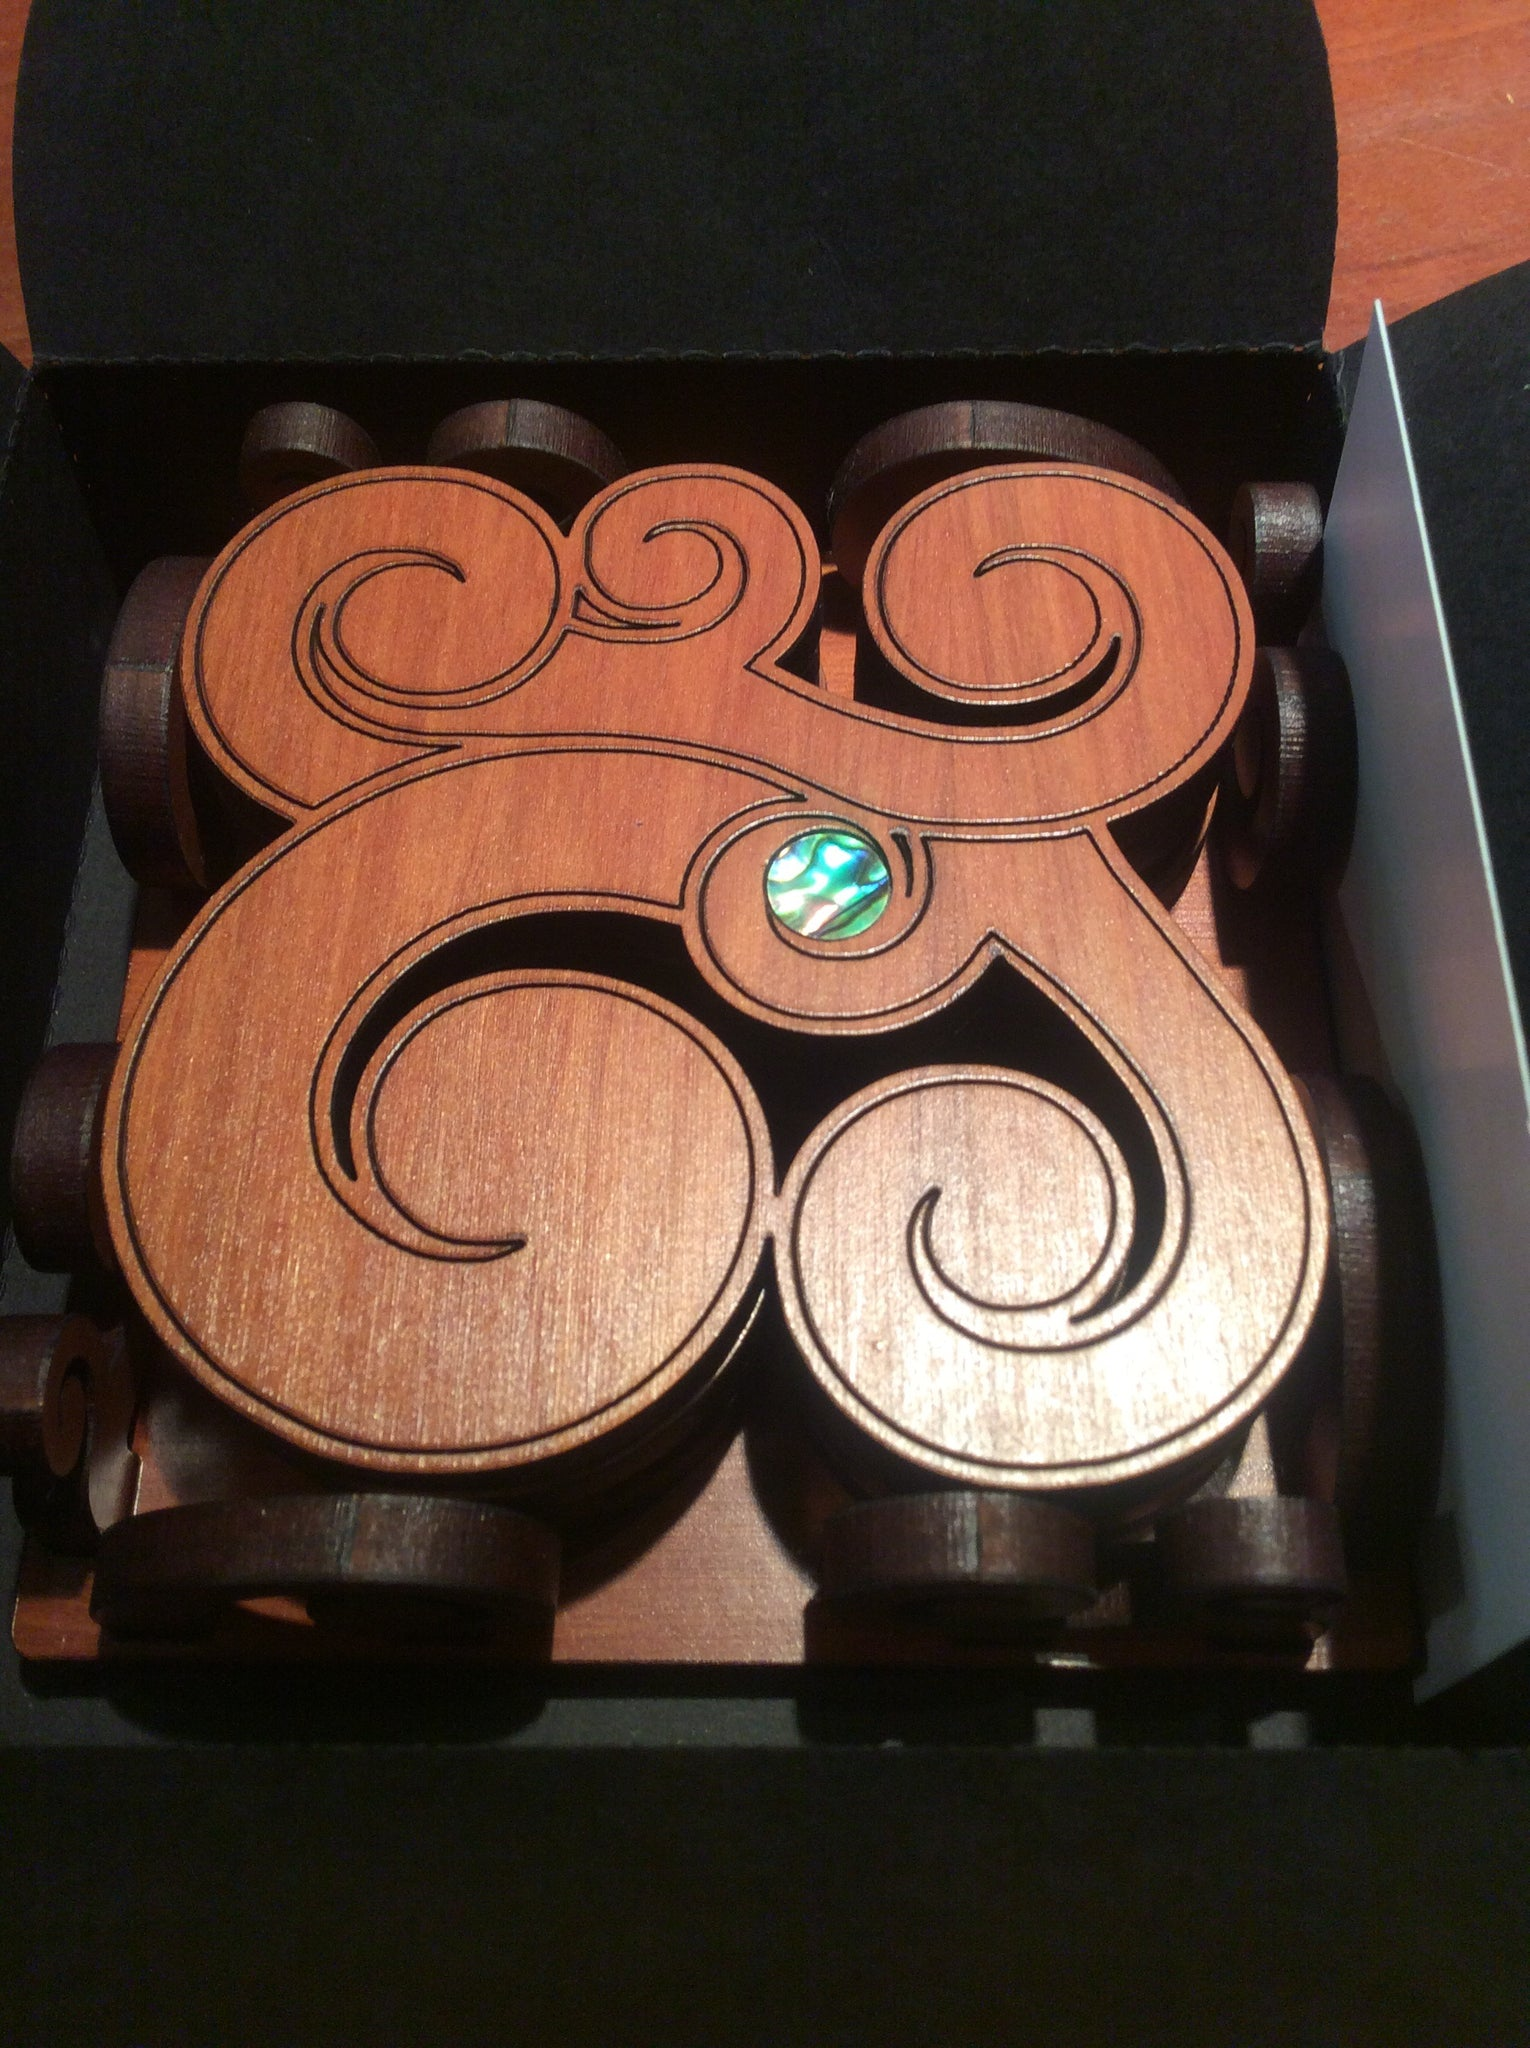 Paua Koru coasters in Caddy